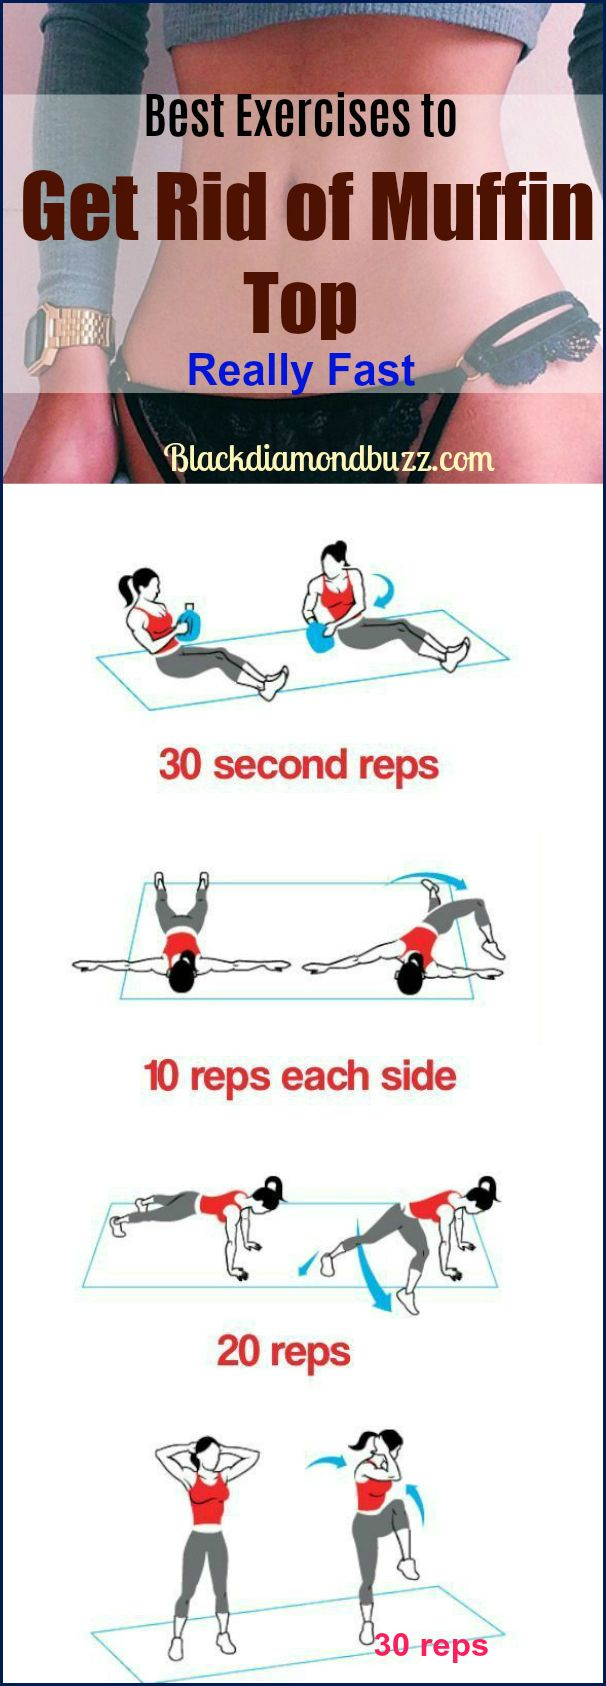 Best Exercises to Get Rid of Muffin Top Really Fast at home and side fat- These workouts will tone your lower body and wasitline.It is also easy for beginners and you can do it in 30 days with weight or without weight .You can even try early morning muffin top yoga.  #health  #muffintop   #workout